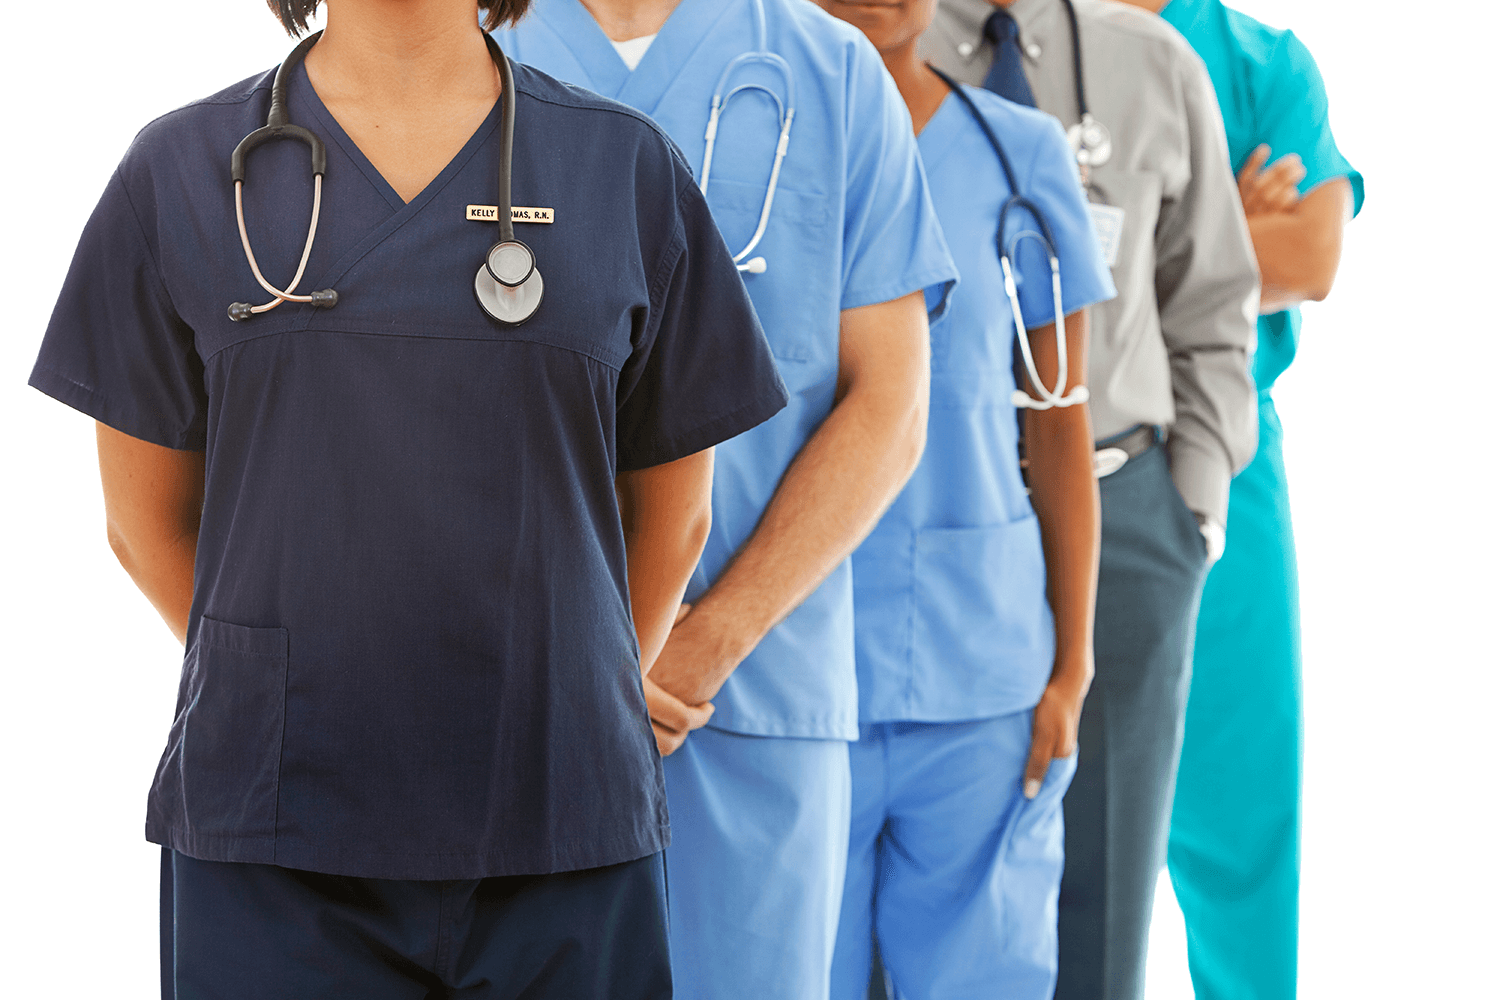 What is the point of taking CNA course for a promising career in Nursing?